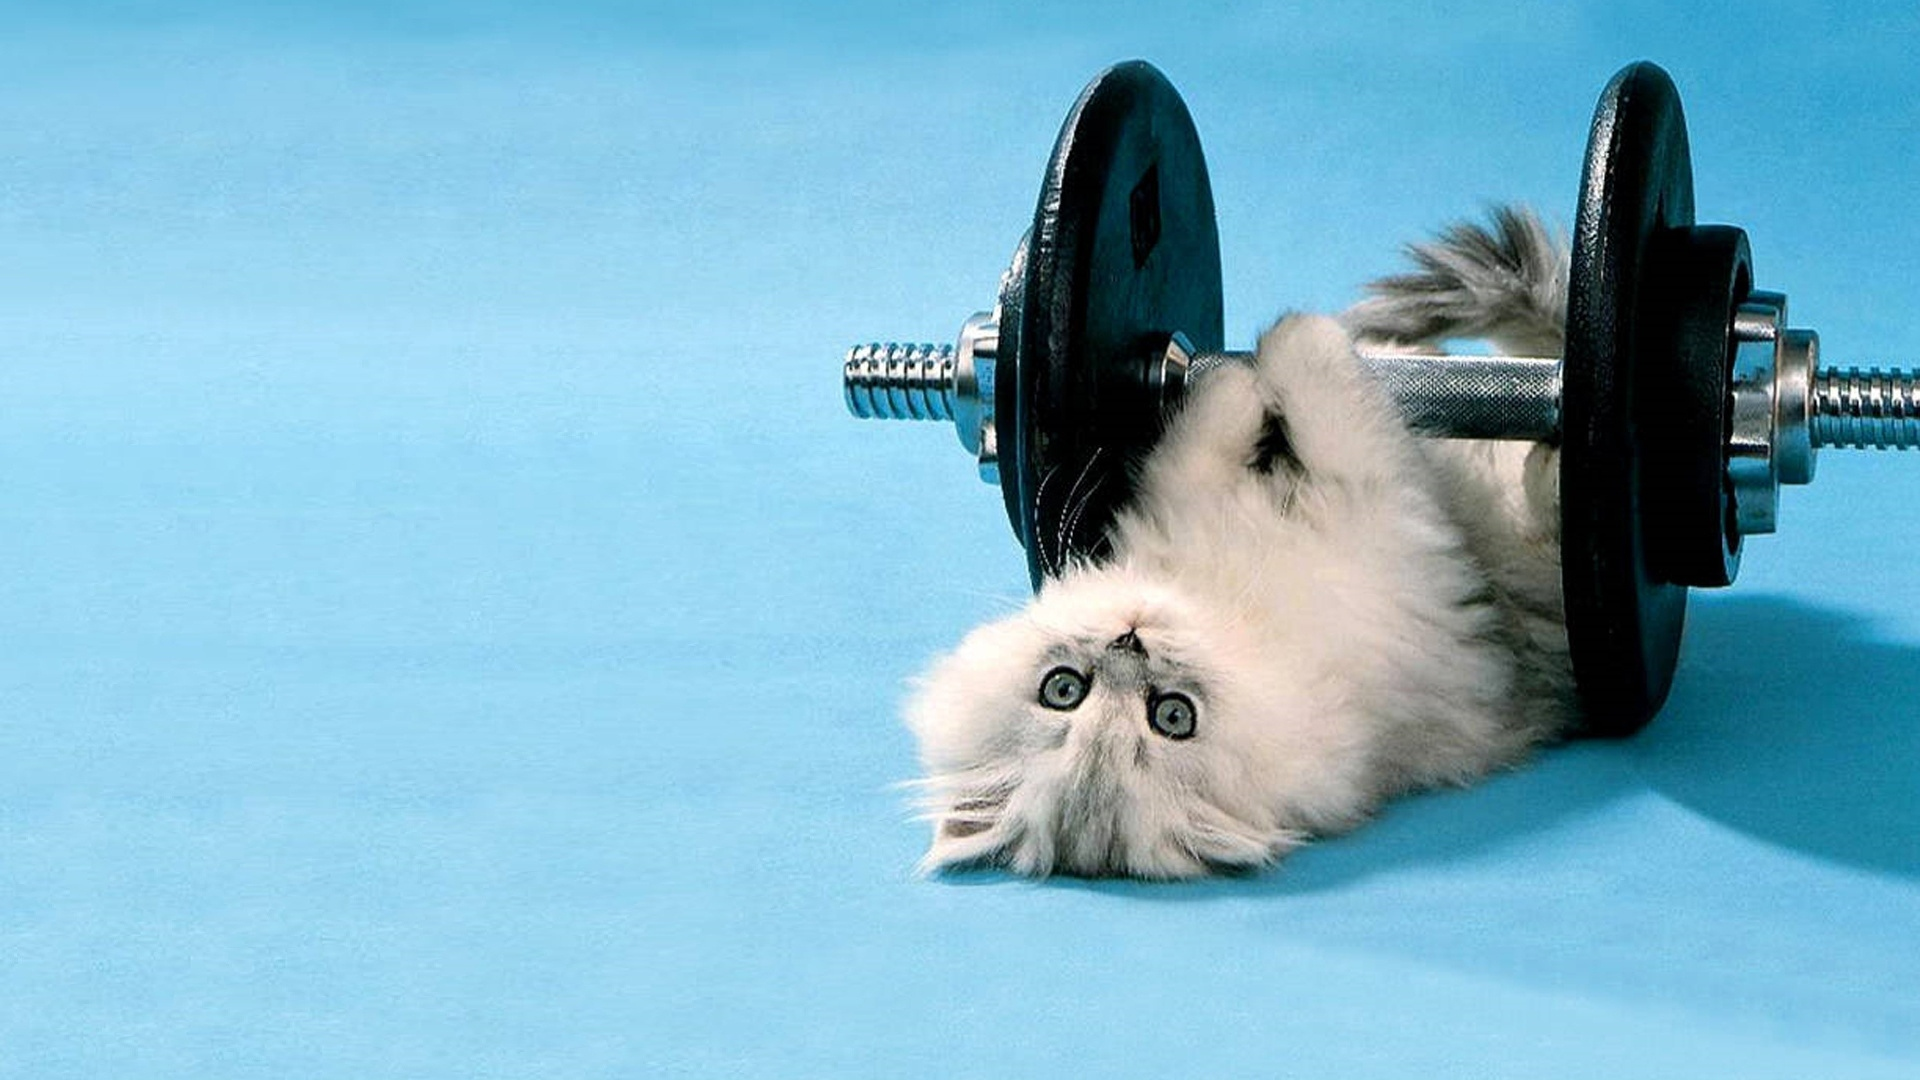 cat_dumbbells_funny_lie_52864_1920x1080